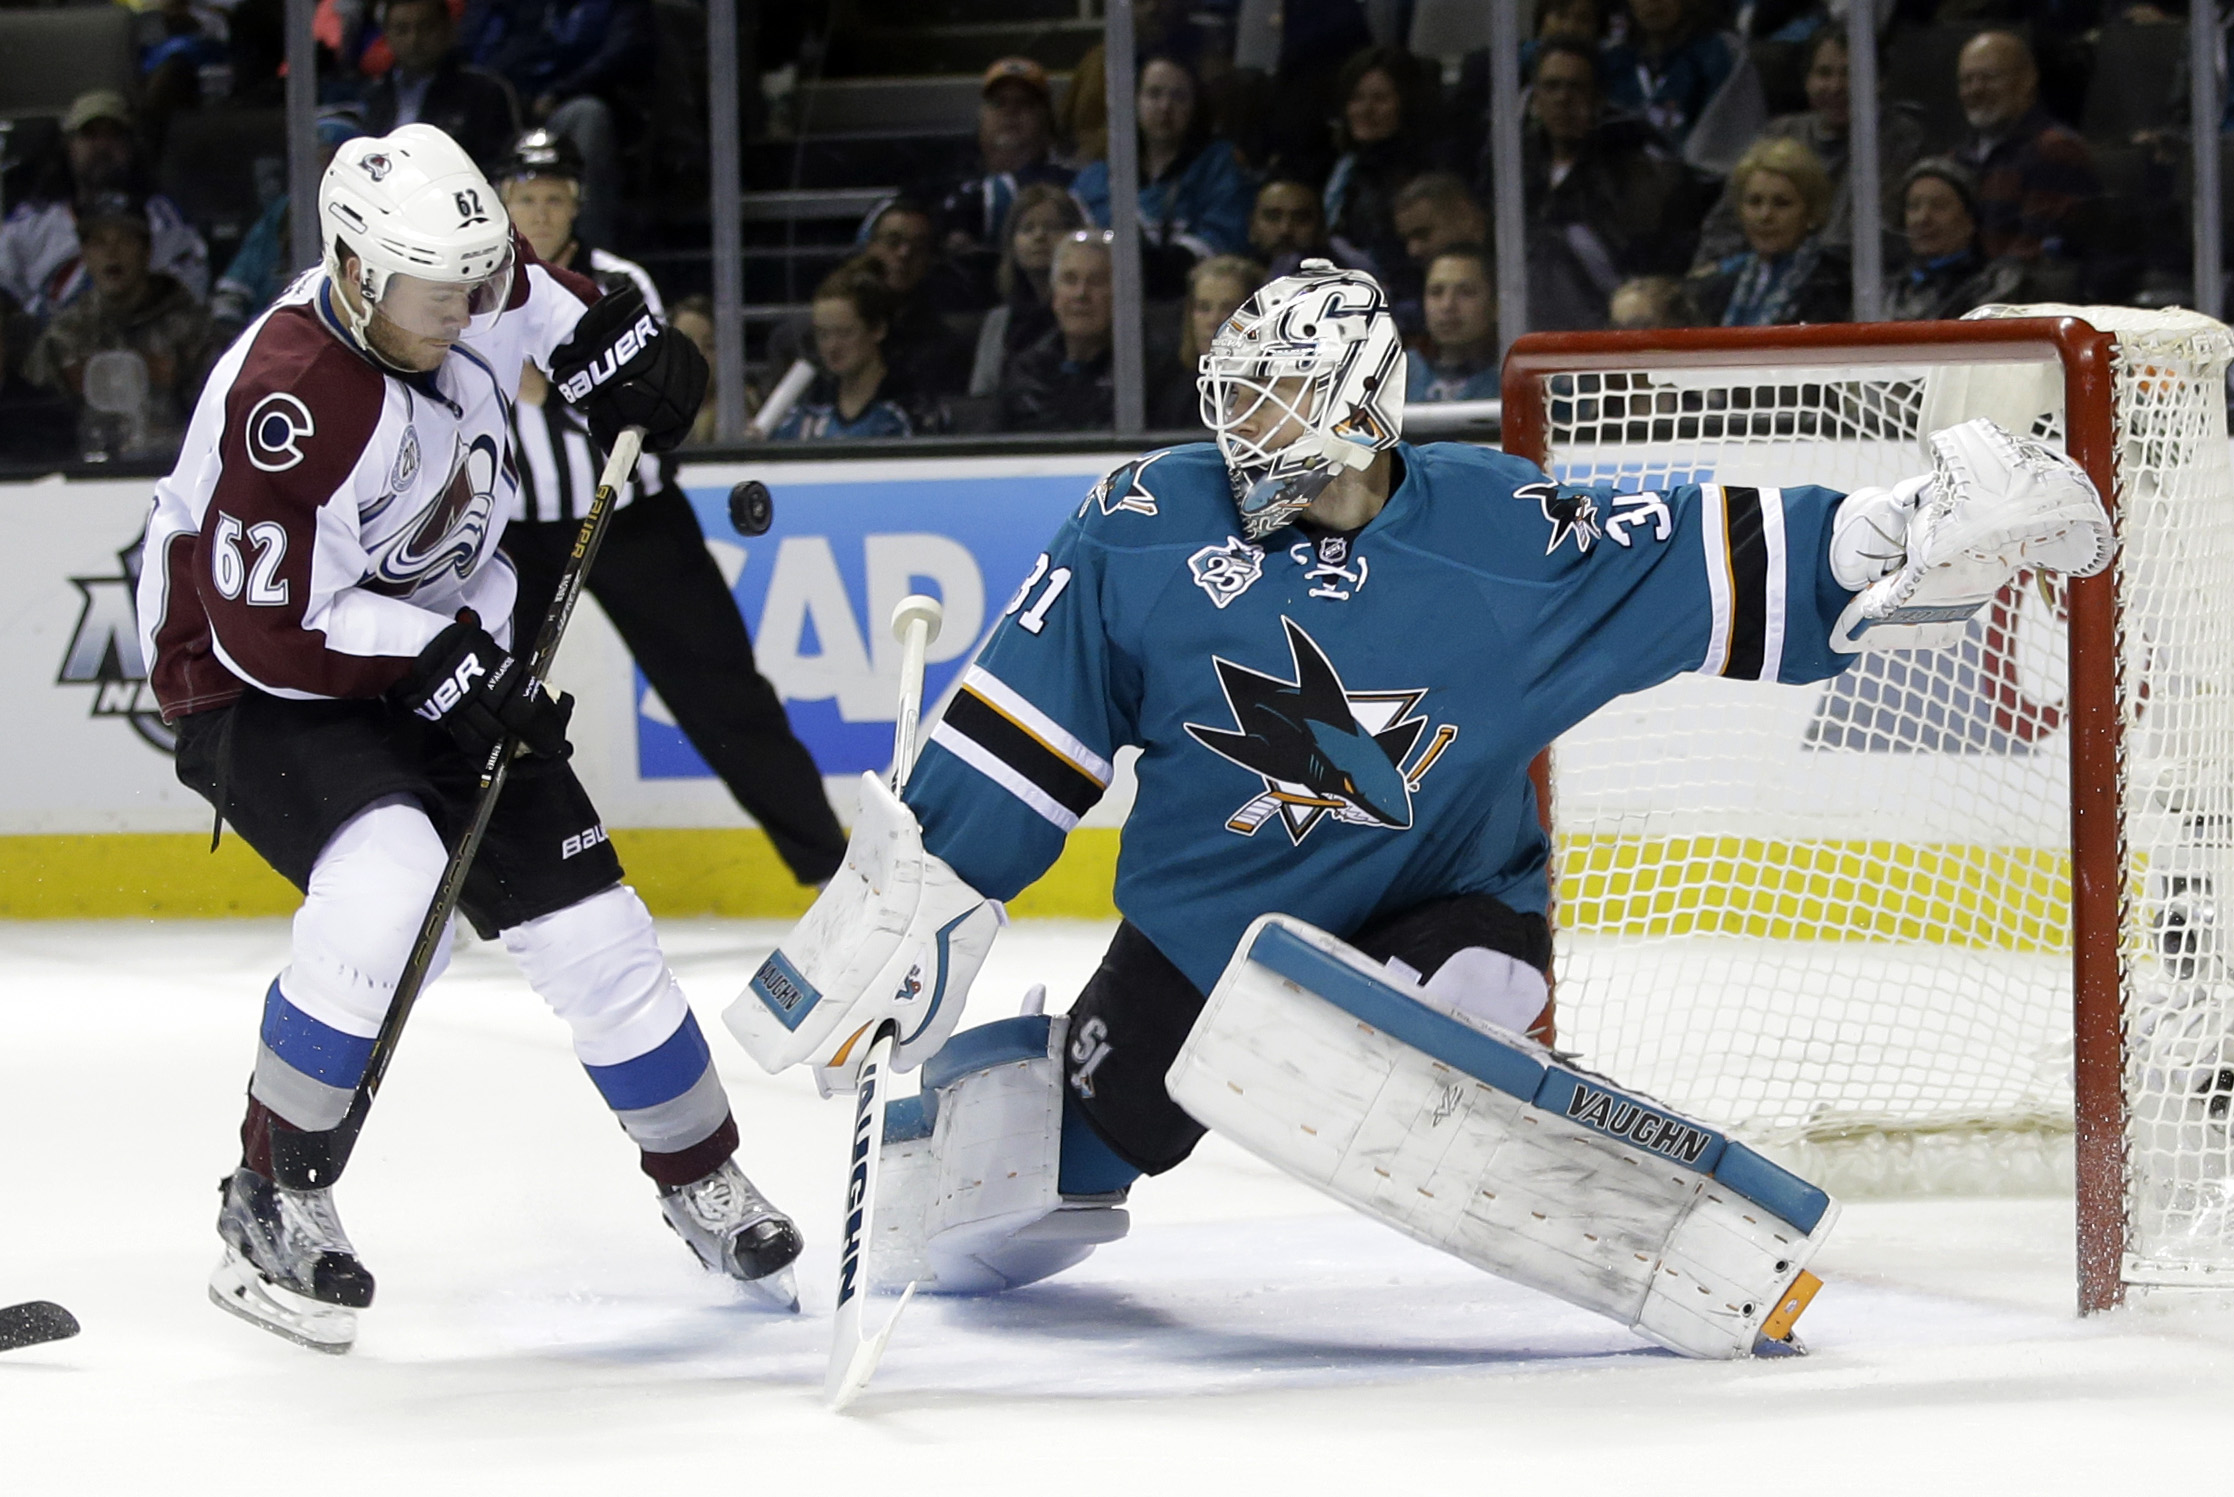 San Jose Sharks goalie Martin Jones, right, deflects a shot on goal as Colorado Avalanche's Chris Wagner (62) closes in during the second period of an NHL hockey game Tuesday, Jan. 26, 2016, in San Jose, Calif. (AP Photo/Marcio Jose Sanchez)